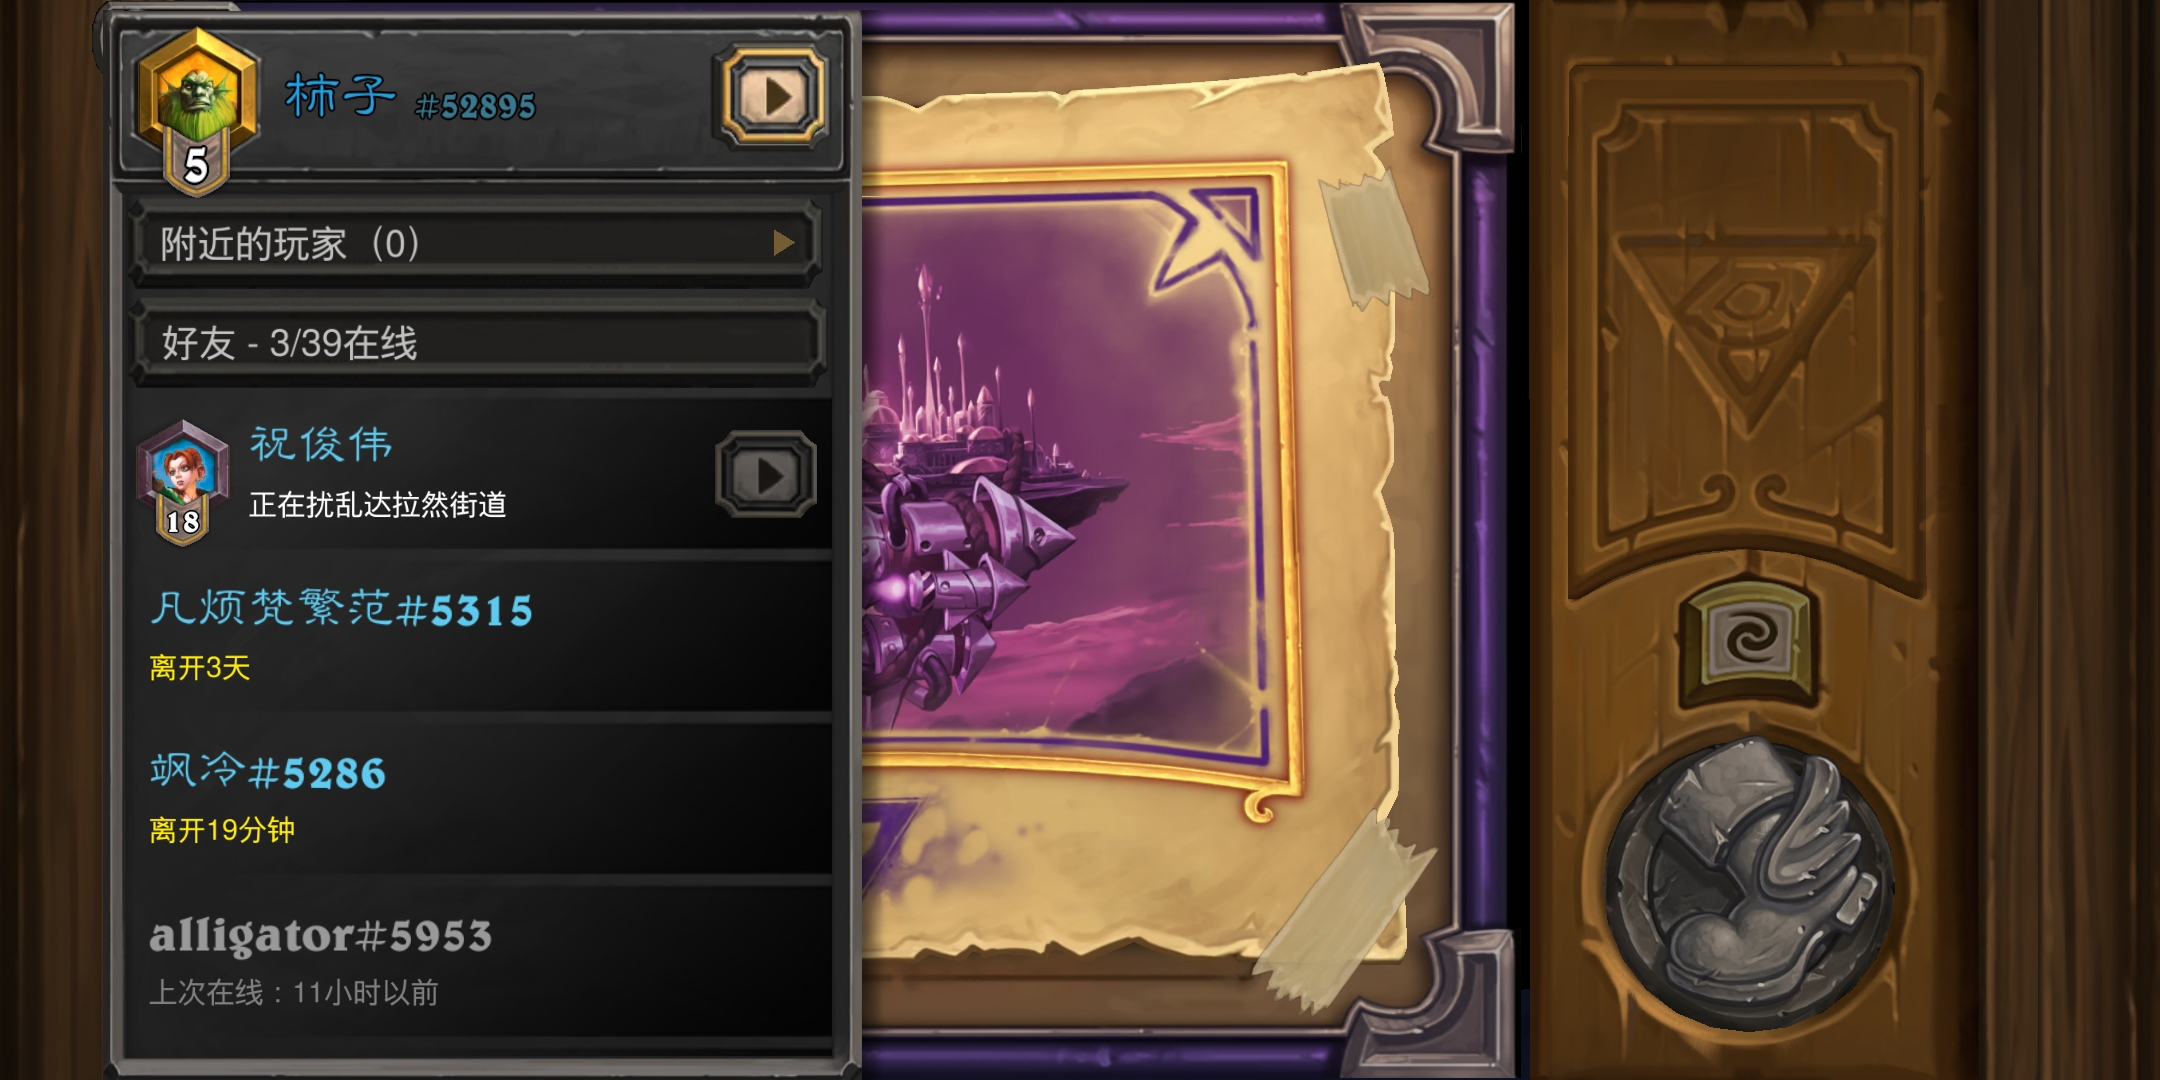 Screenshot_20190609_194807_com.blizzard.wtcg.hearthstone.jpg